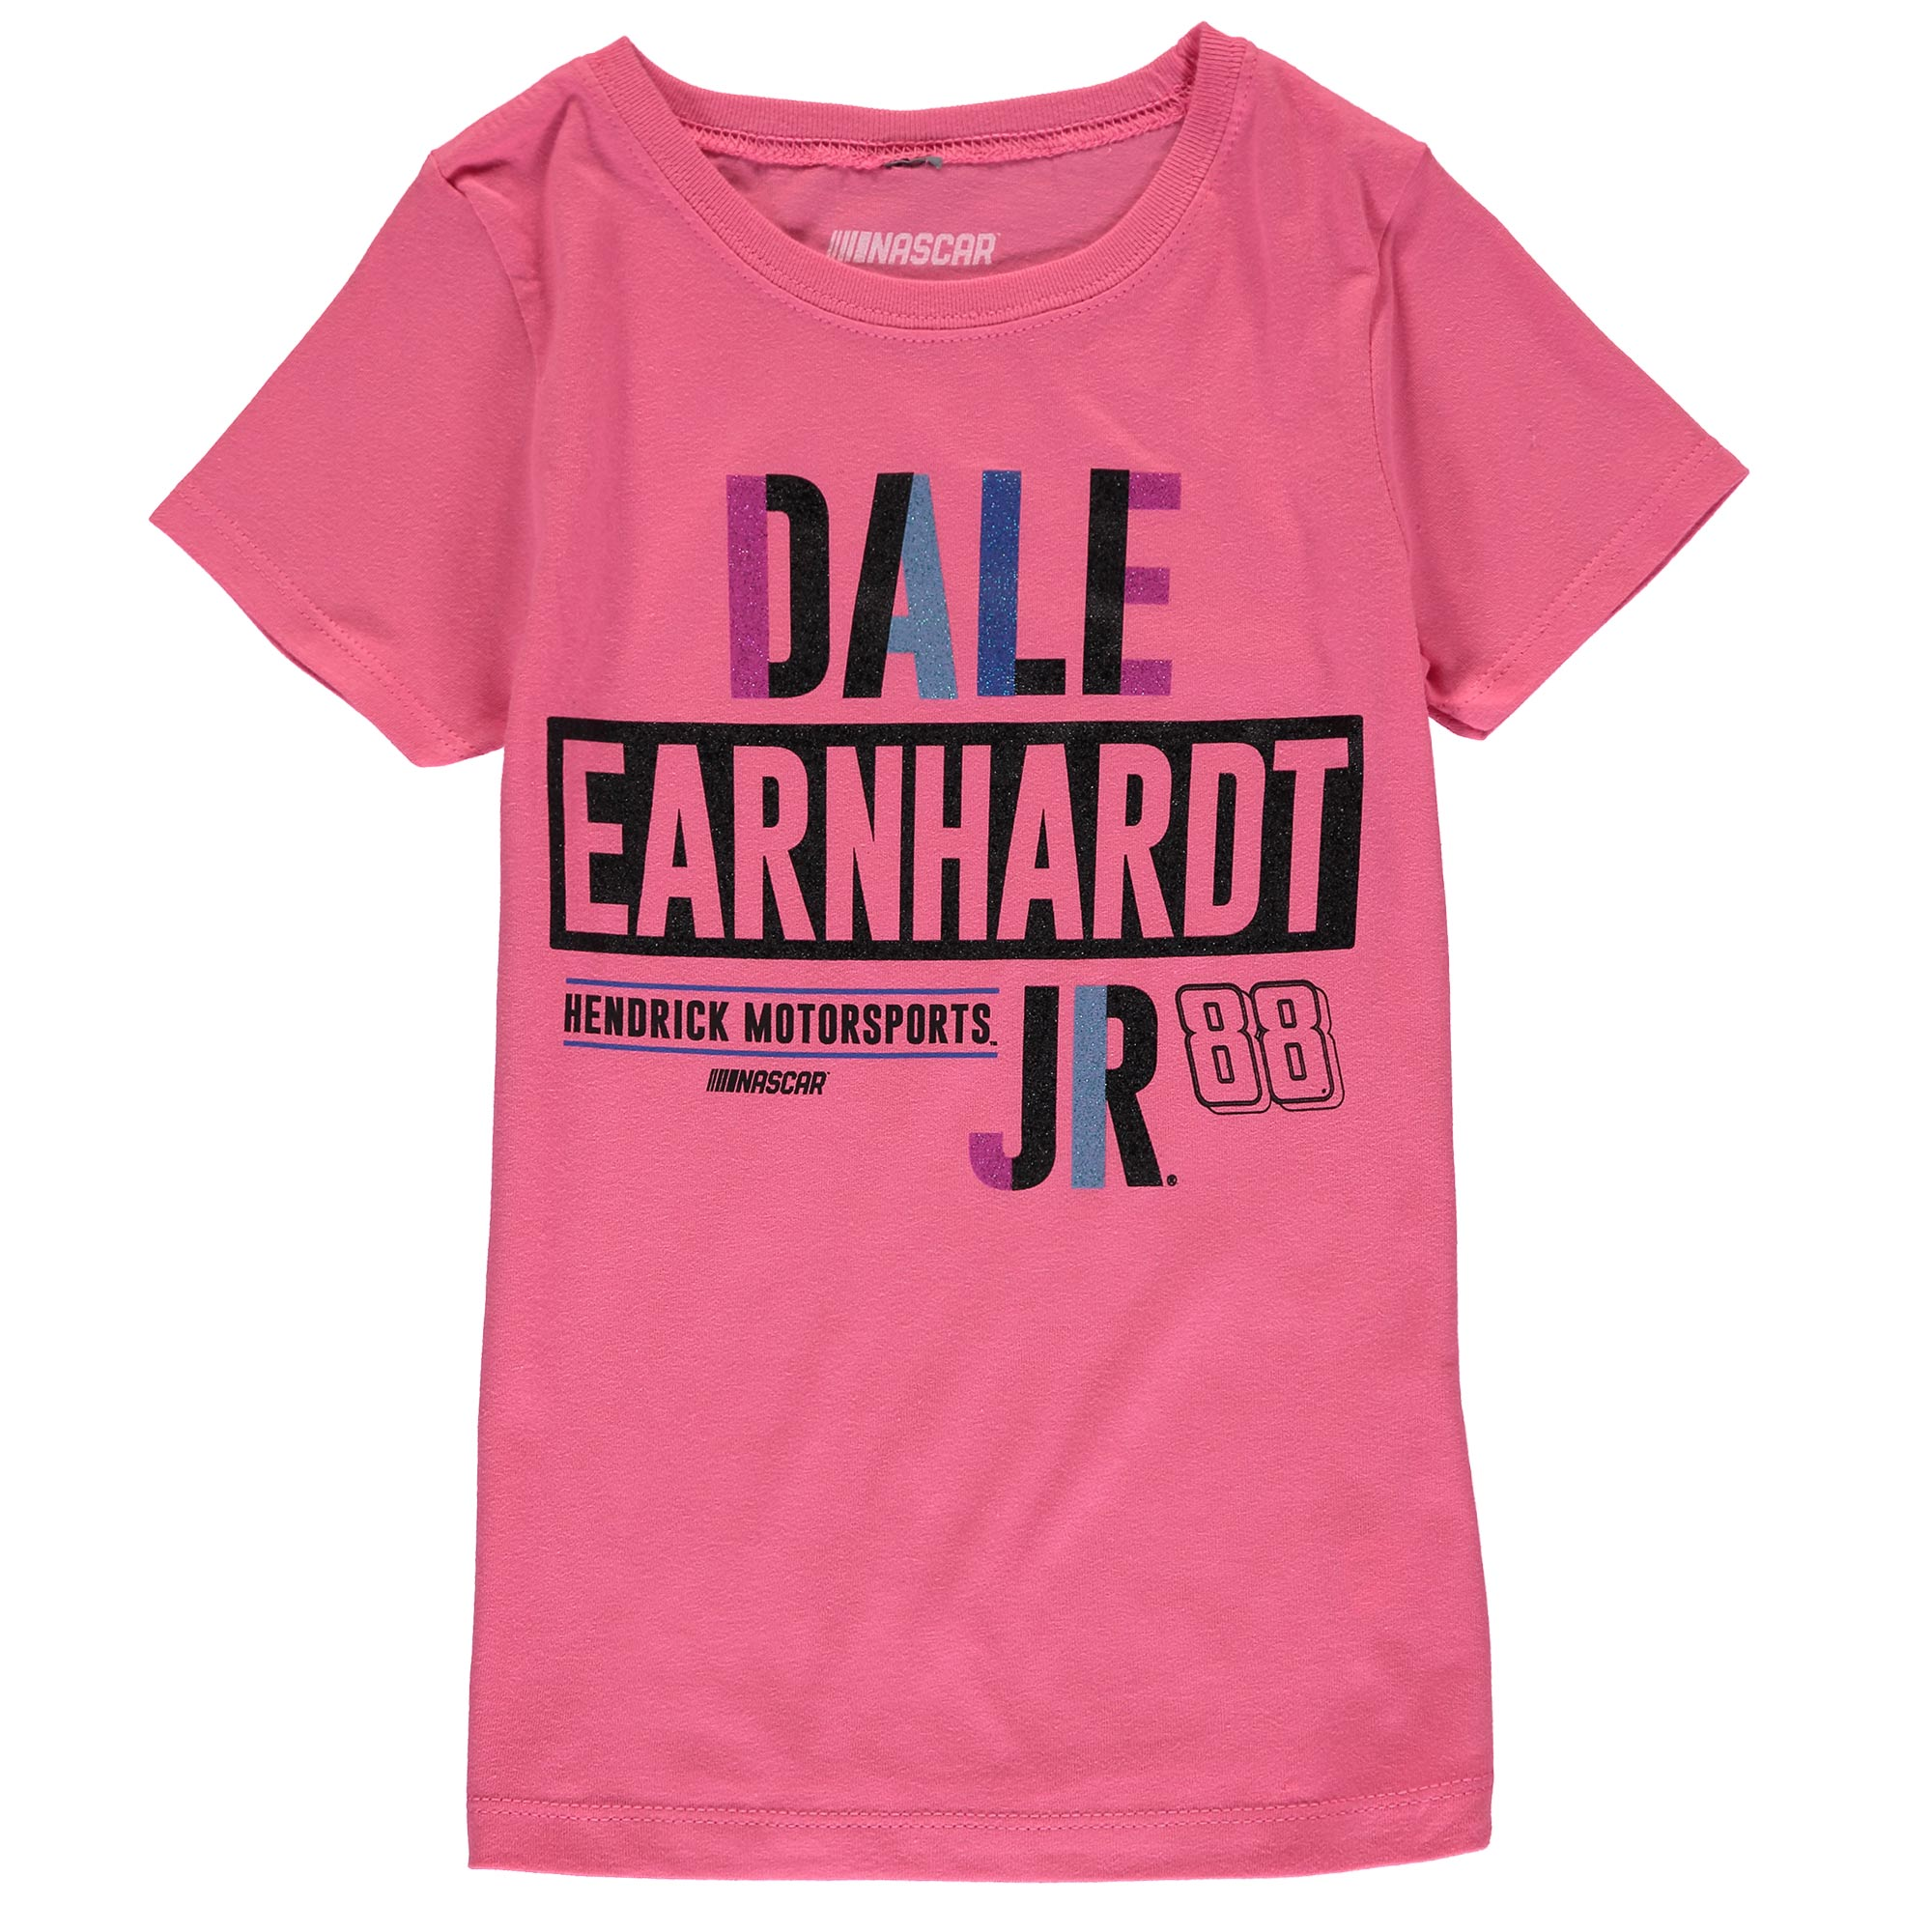 Dale Earnhardt Jr. Fanatics Branded Girls Youth Driver T-Shirt - Pink